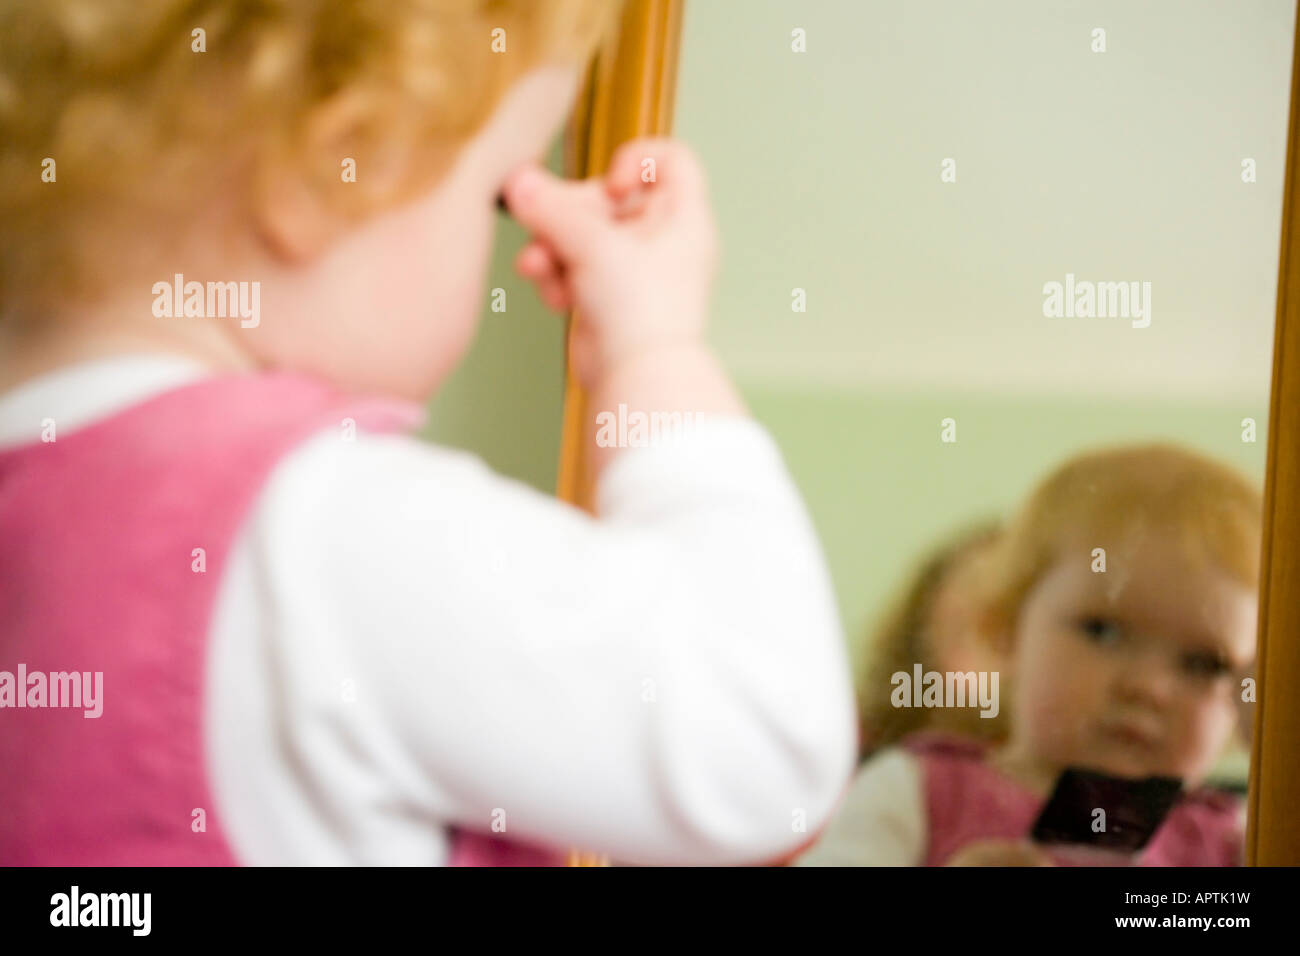 7631af9a0 Year Old Strawberry Blonde Girl Stock Photos   Year Old Strawberry ...